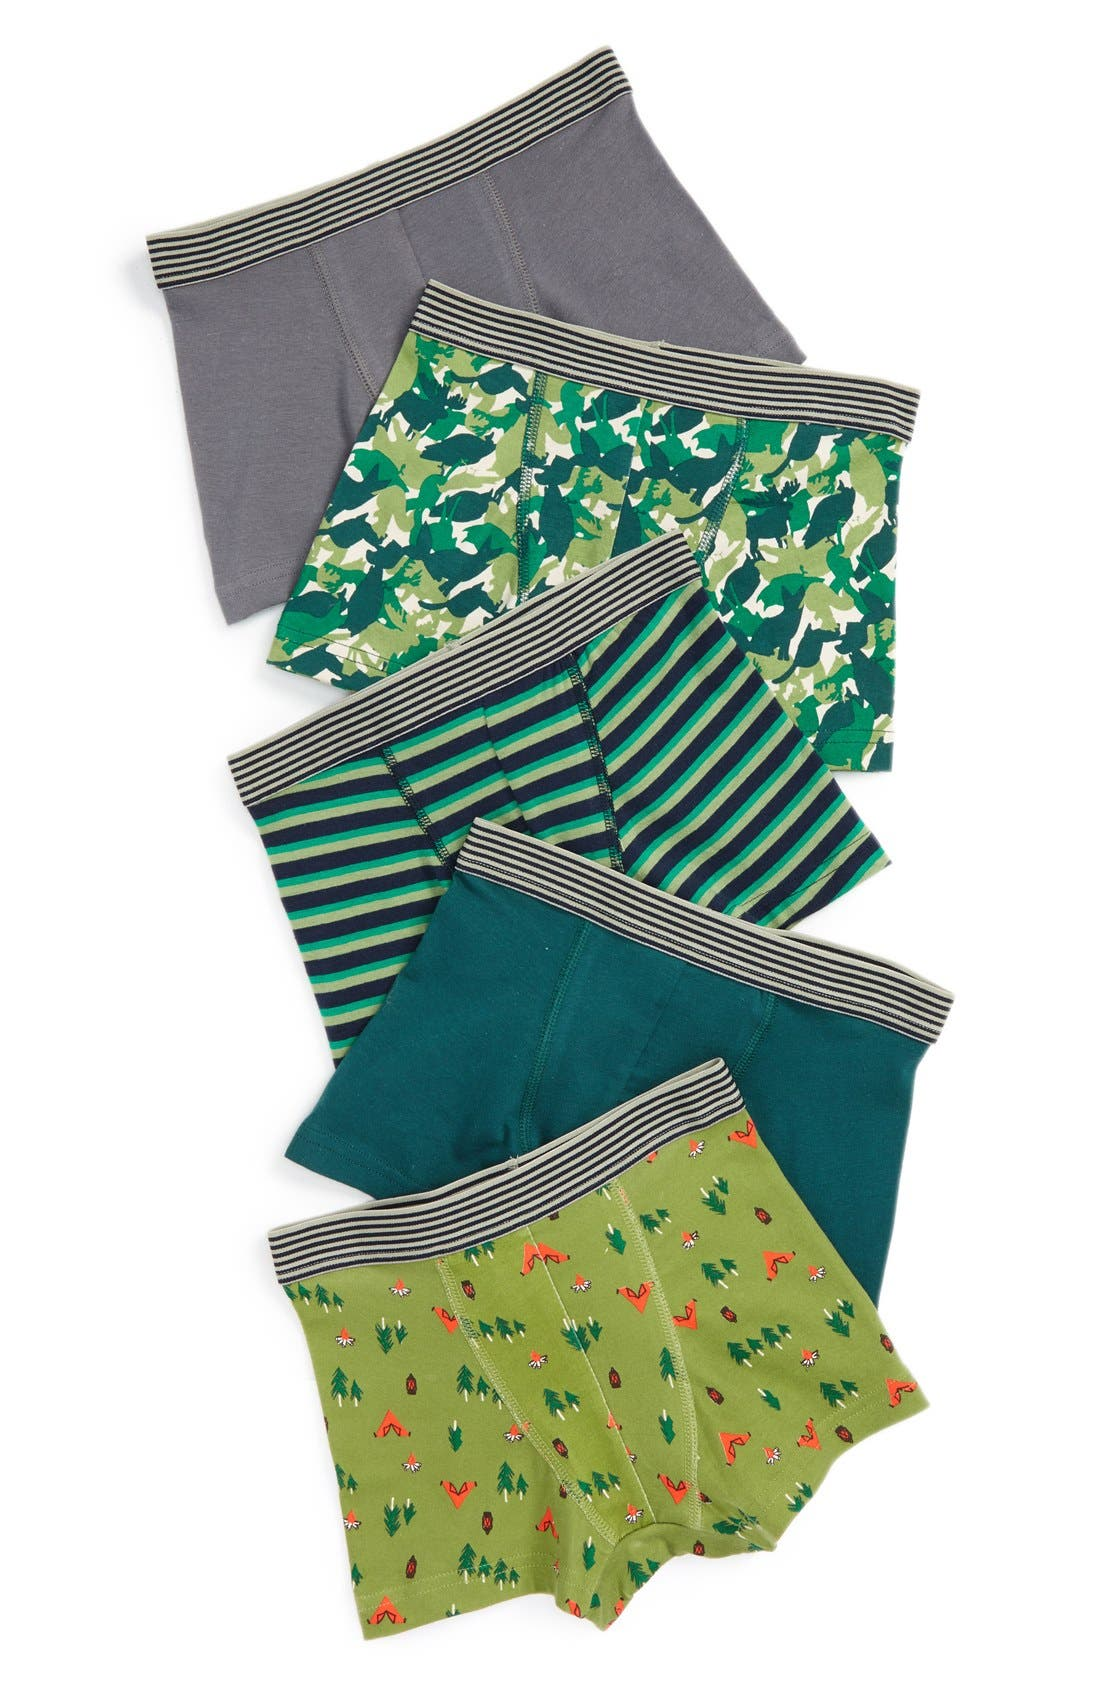 Alternate Image 1 Selected - Tucker + Tate Briefs (5-Pack) (Toddler Boys, Little Boys & Big Boys)